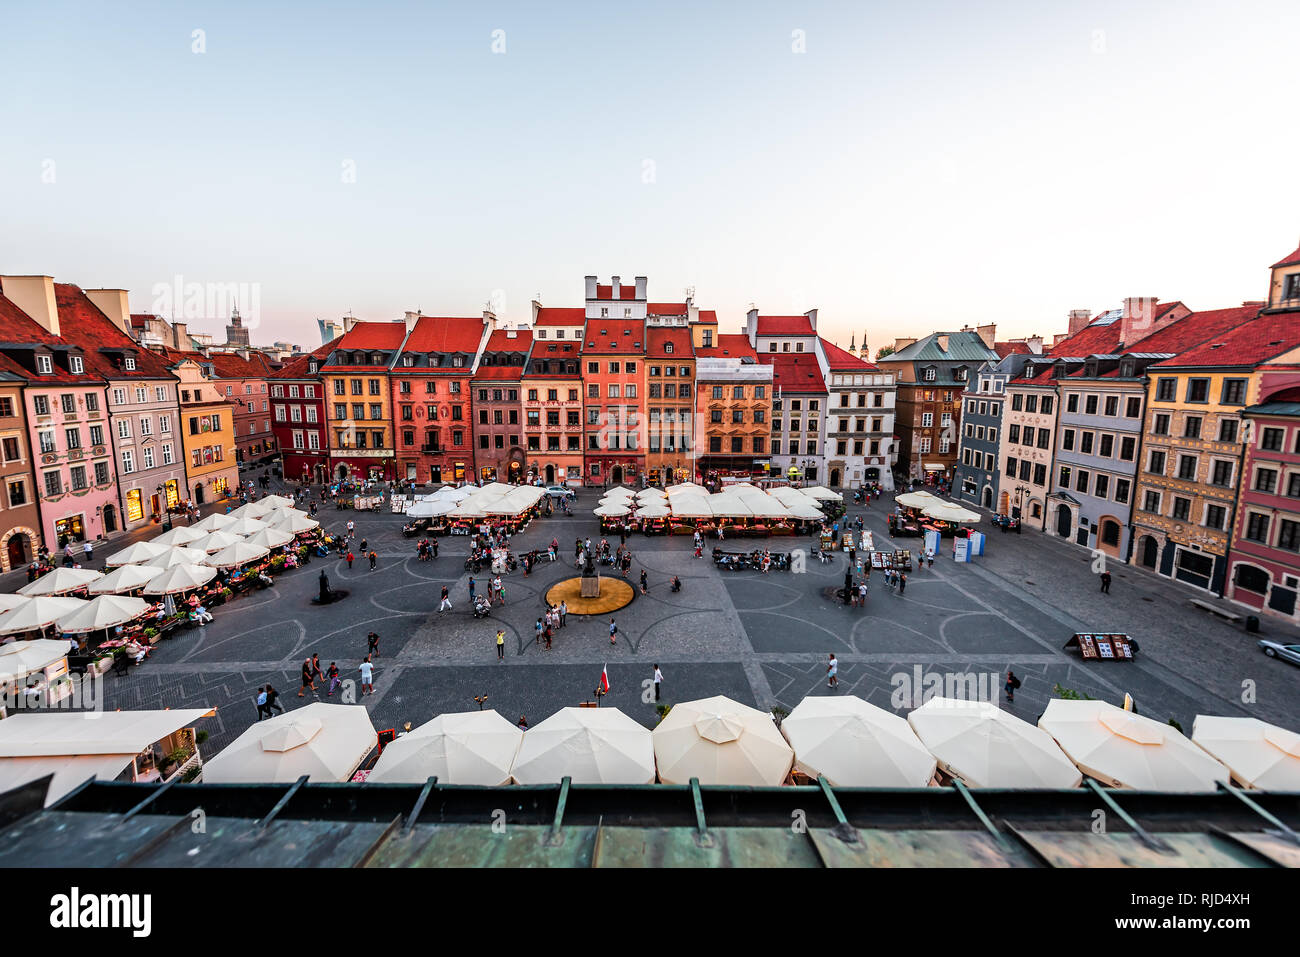 Warsaw, Poland - August 22, 2018: Old town market square with historic cobblestone street during summer day view of old market square in town cafe res Stock Photo